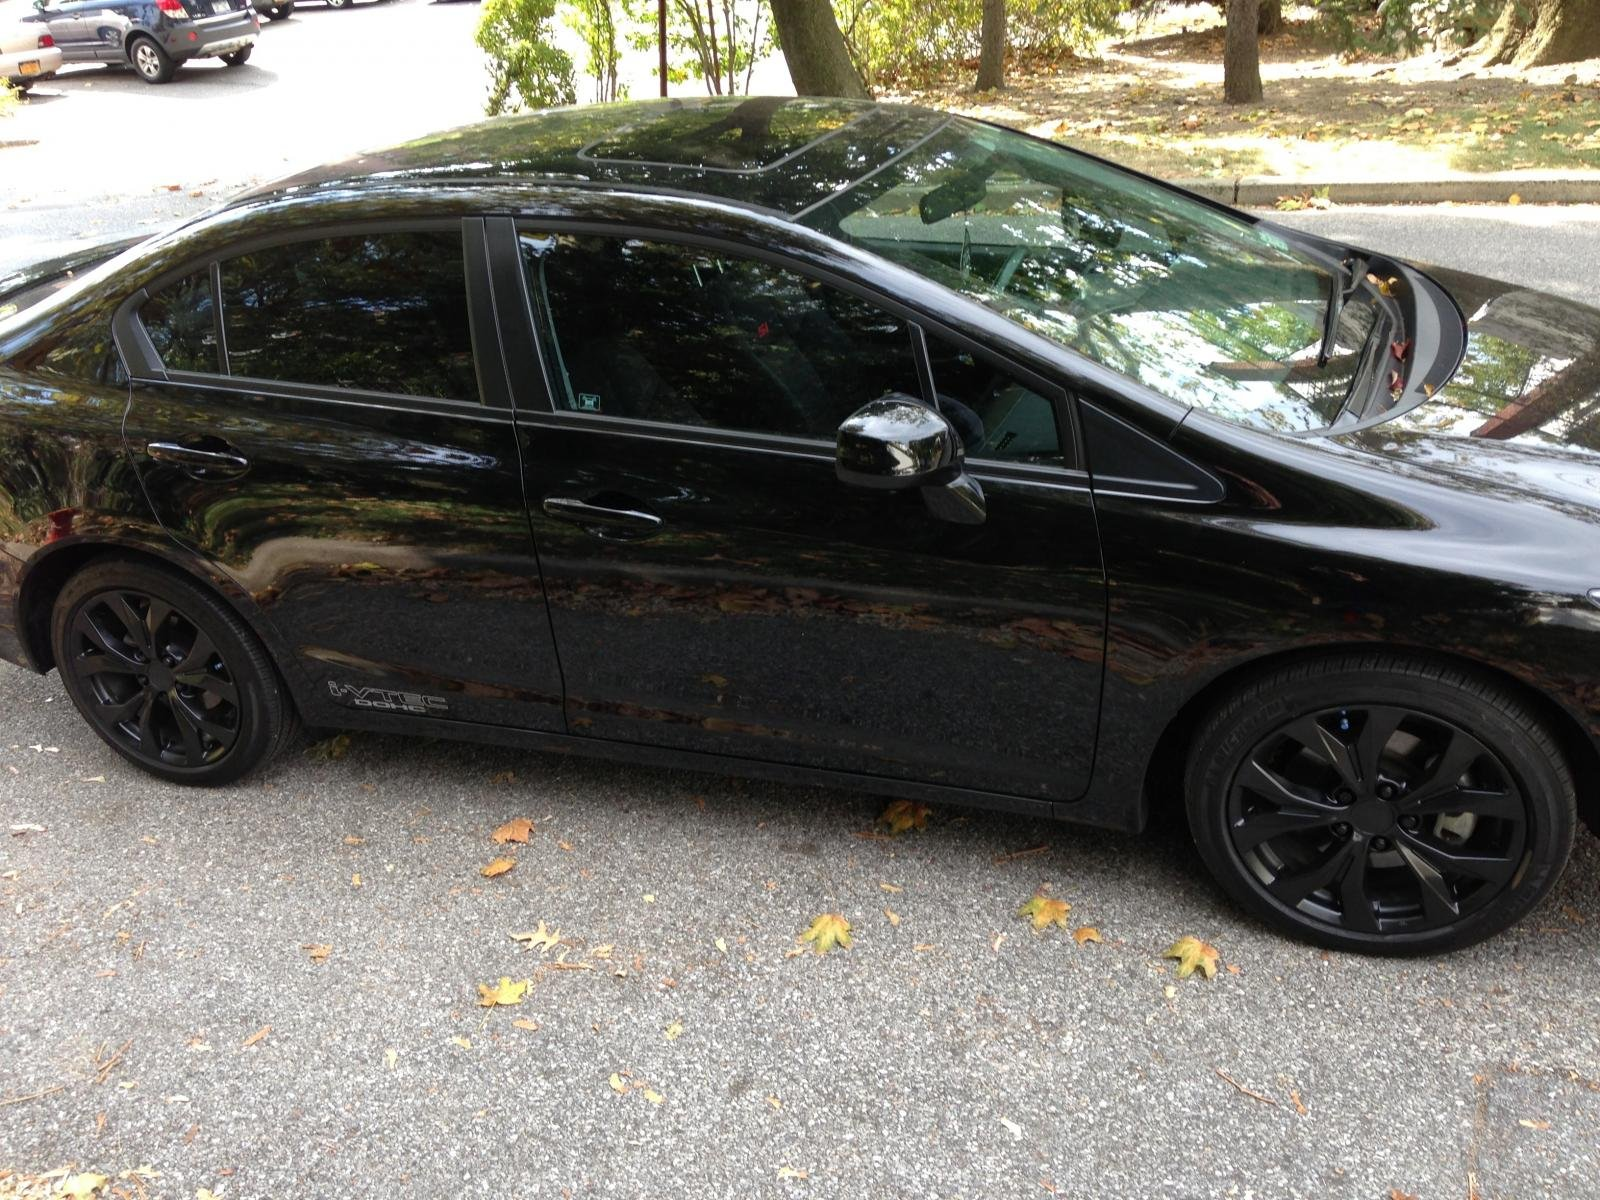 2012 Chevy Cruze Black Rims Not a great pic but to the guy